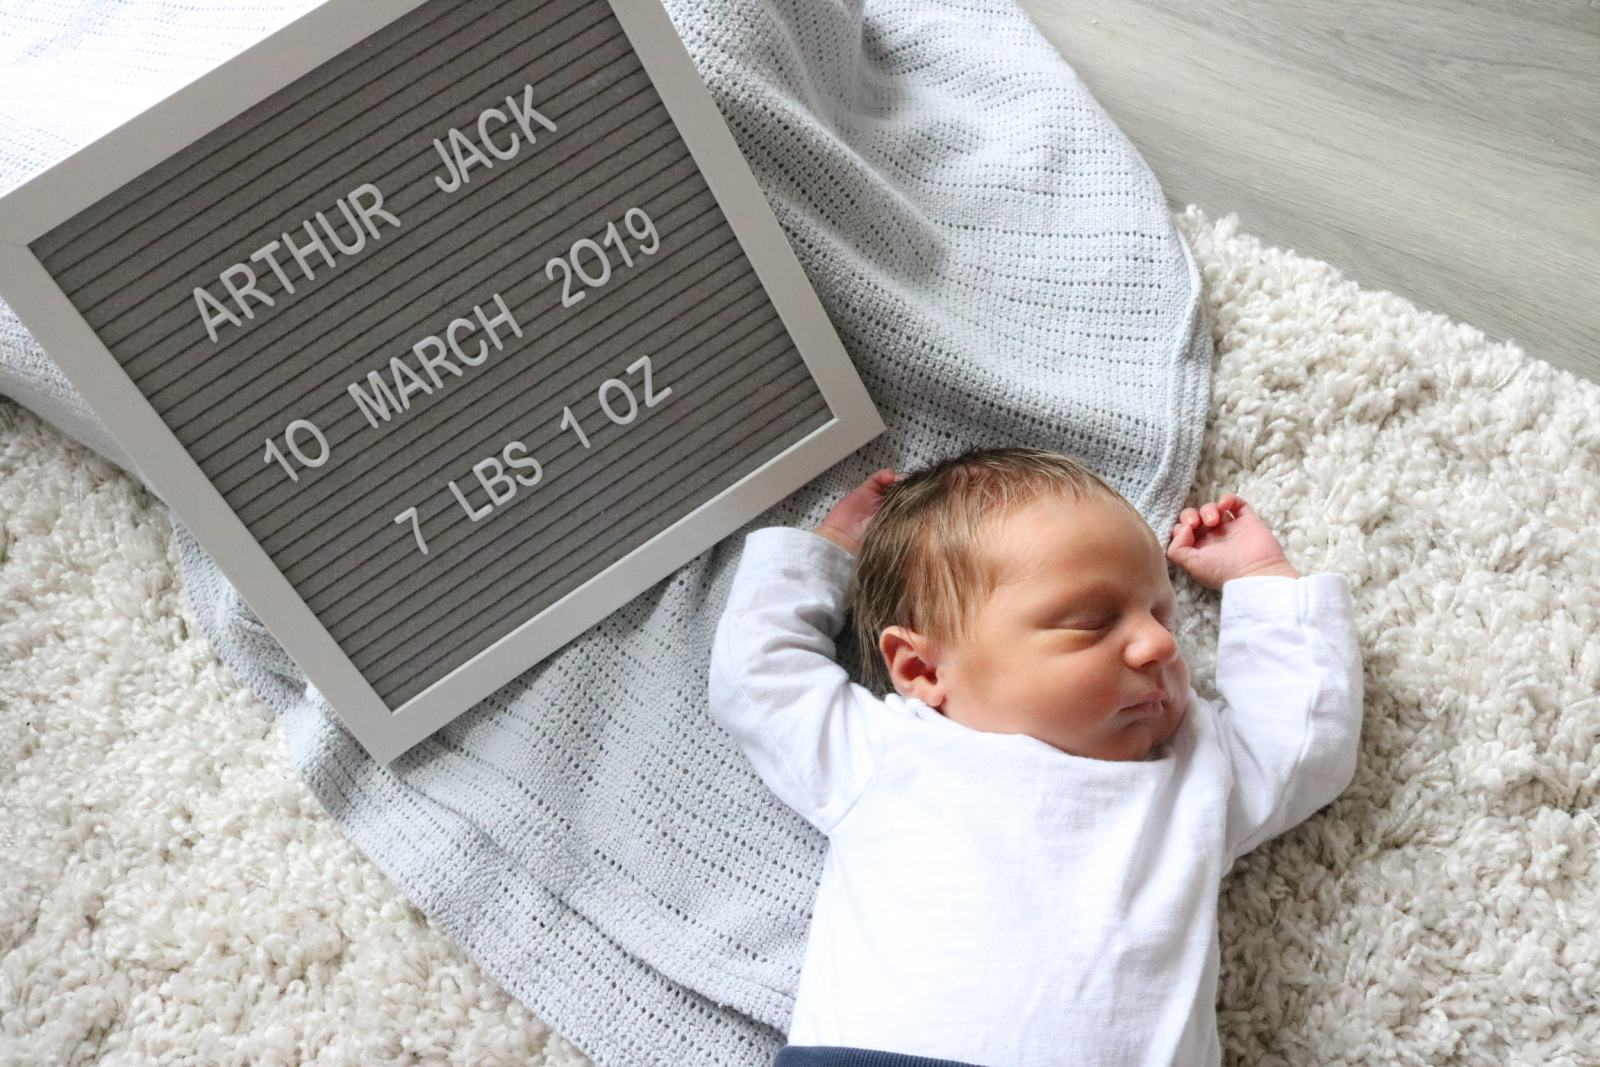 A Newborn baby named Arthur laying on a cream shaggy rug next to a sign with his date of birth and weight